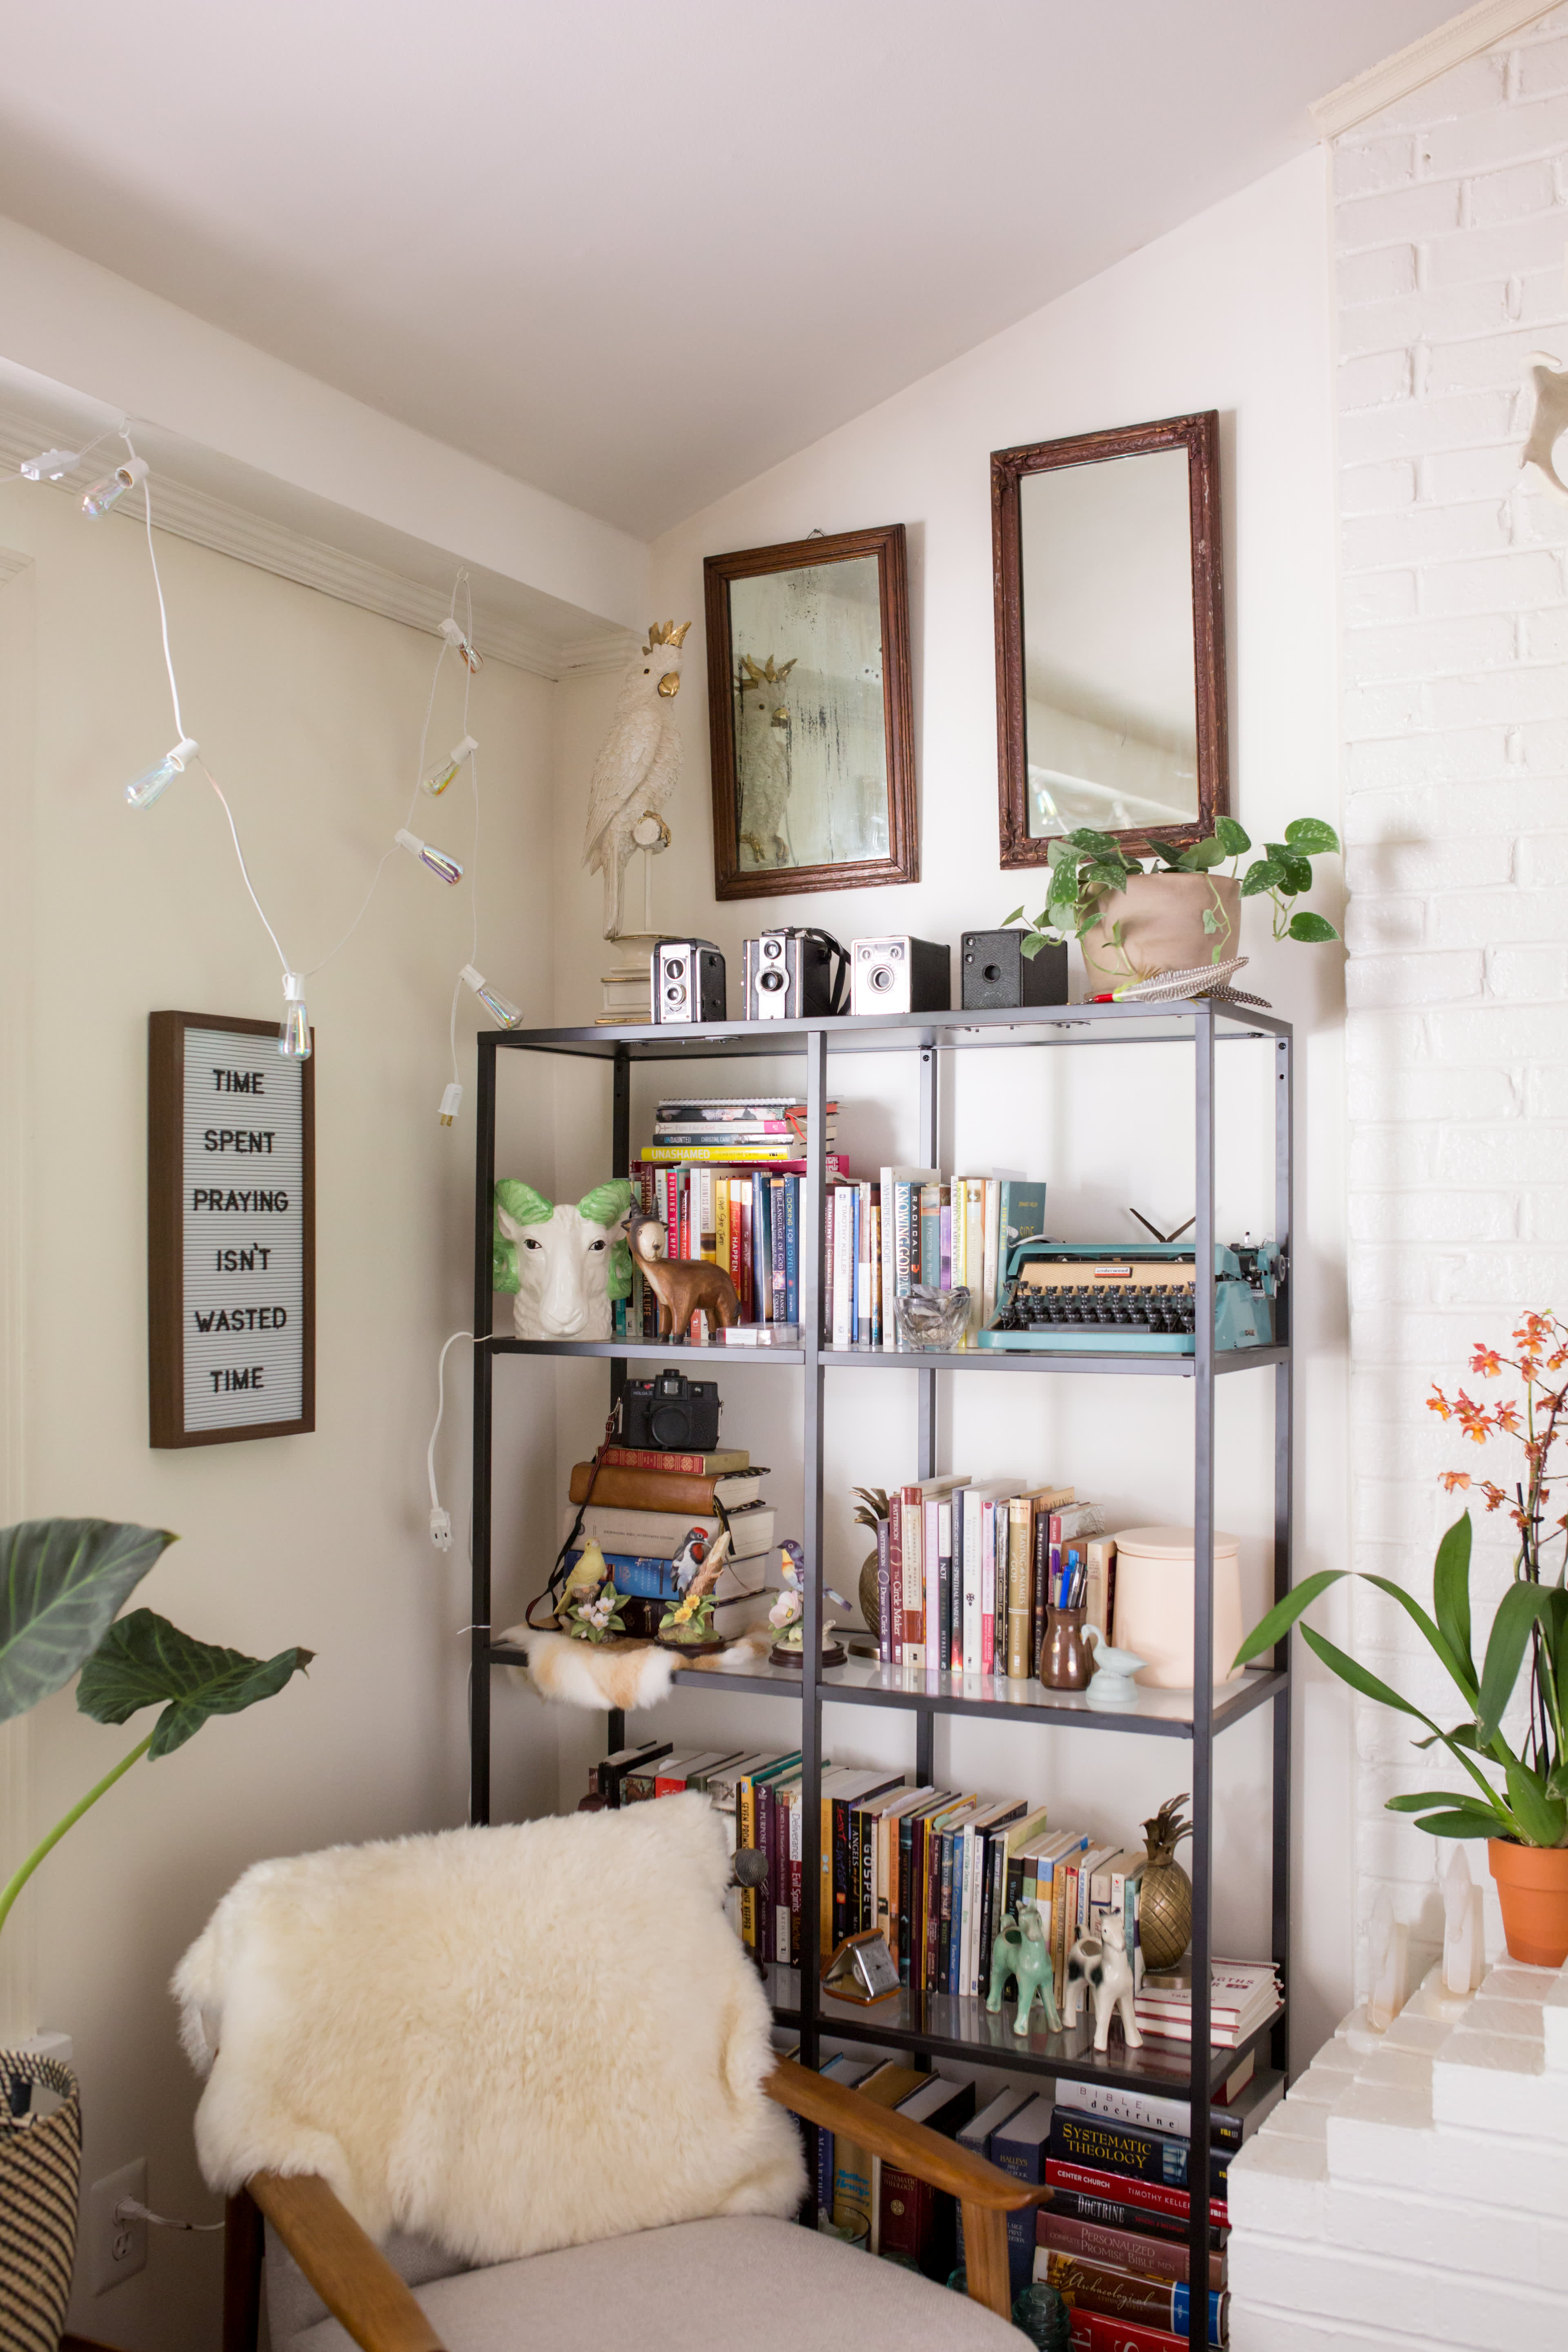 Tour a Ceramicist's Home and Studio | Apartment Therapy